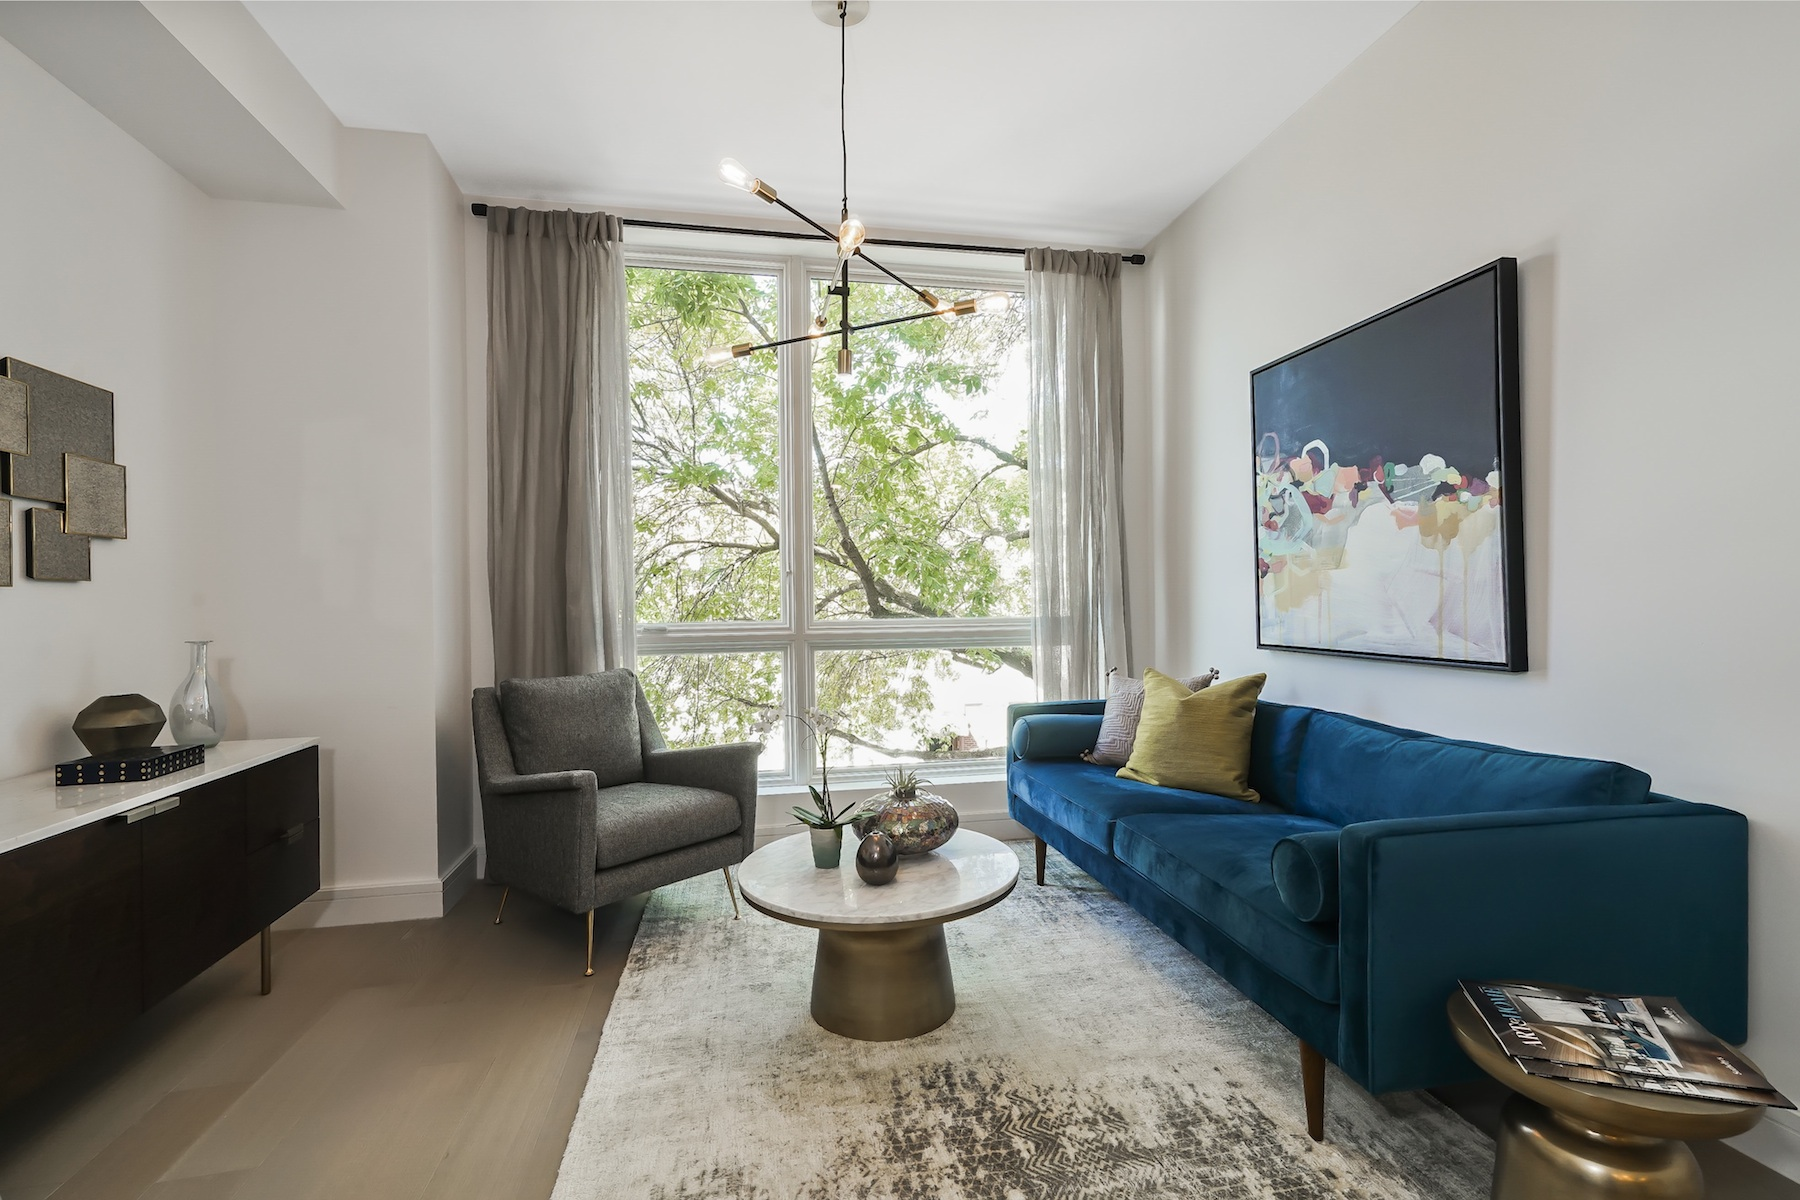 Additional photo for property listing at Stanton on Sixth 695 Sixth Avenue, 3J Brooklyn, New York 11215 United States